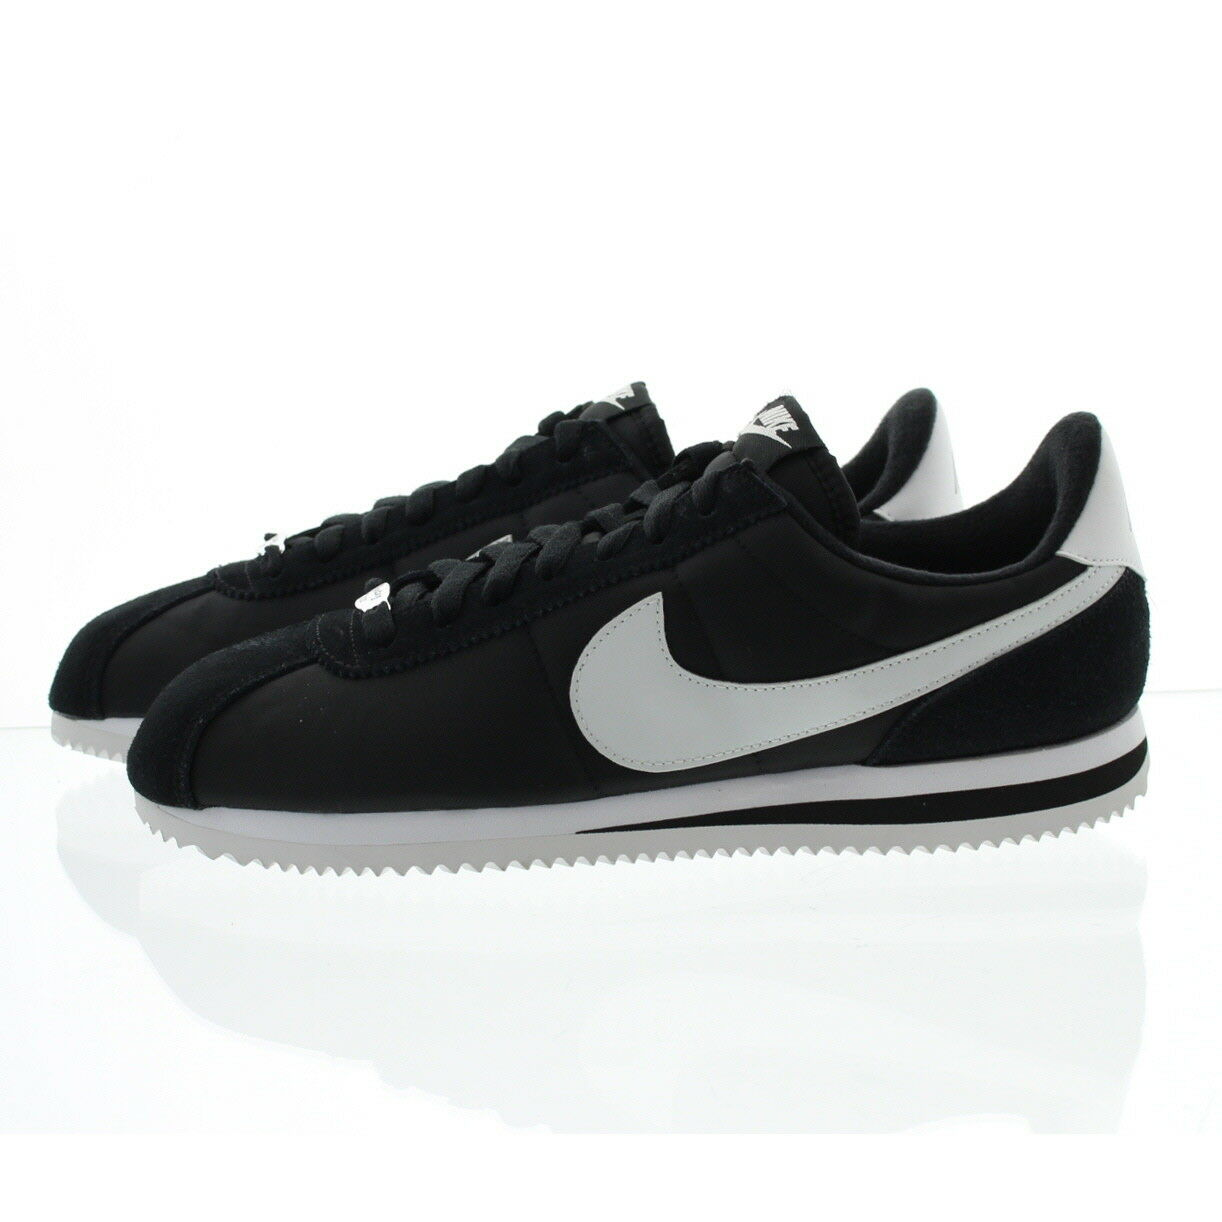 34361f4b491b Nike 819720 819720 819720 Mens Cortez Basic Suede Nylon Low Top Casual Shoes  Sneakers 7e63f8